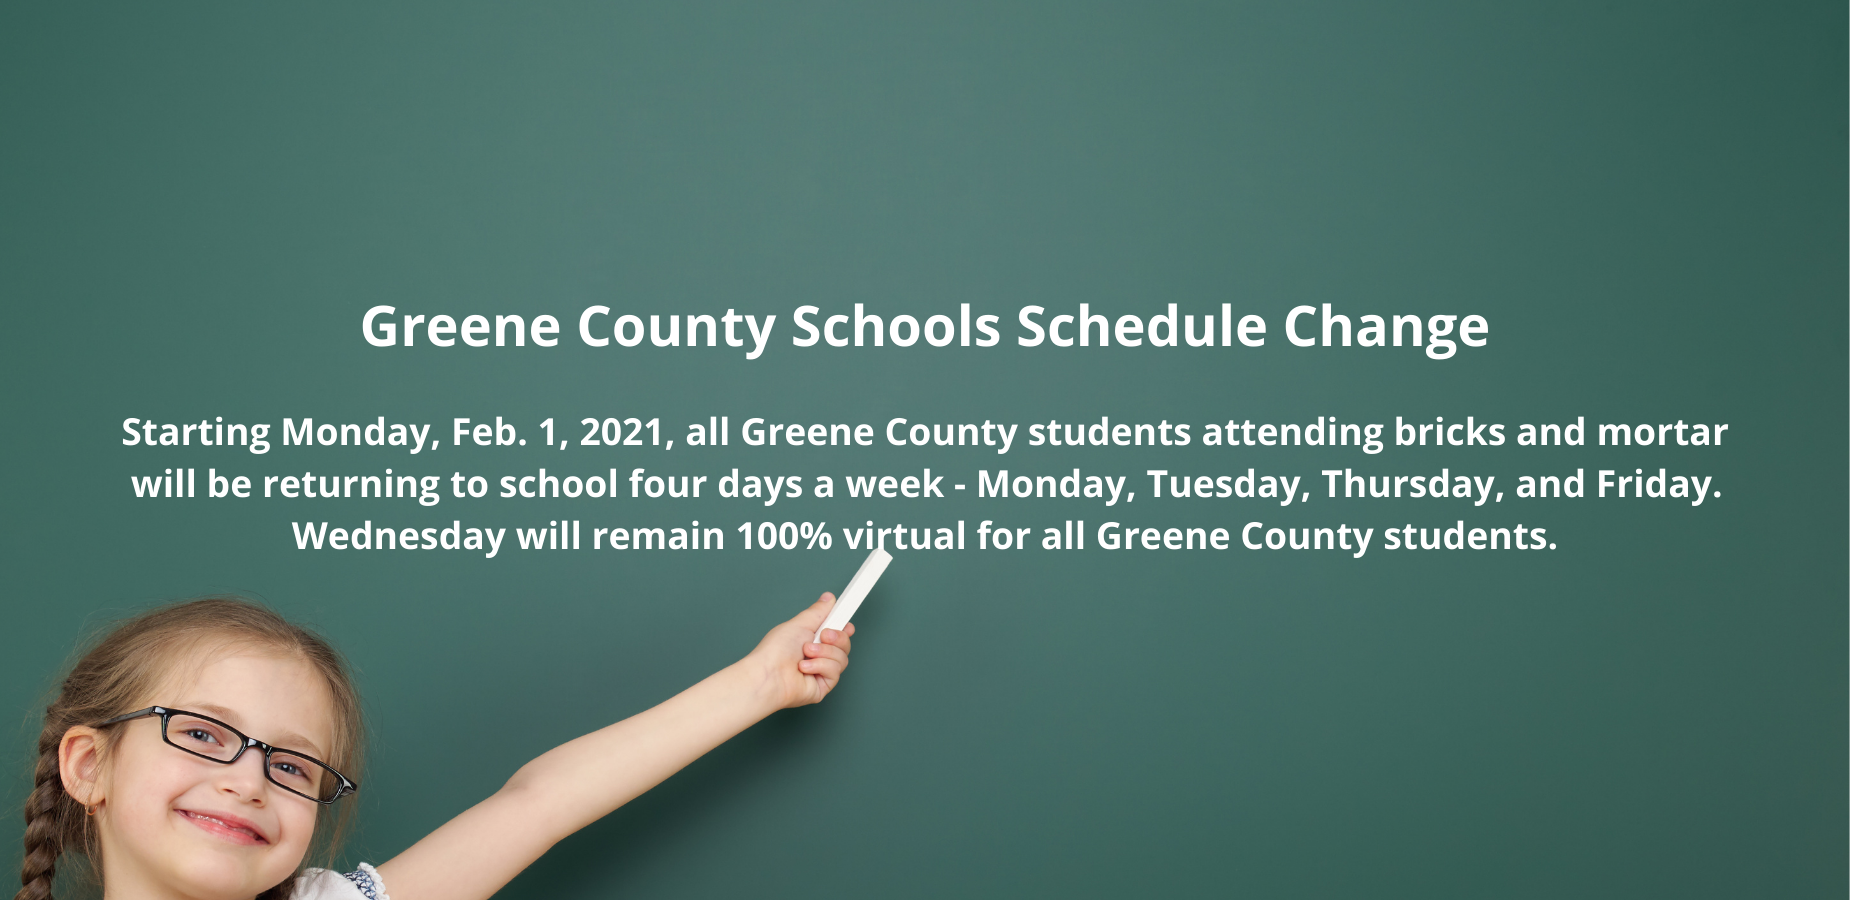 GCS Schedule Change Starts Monday, Feb. 1, 2021